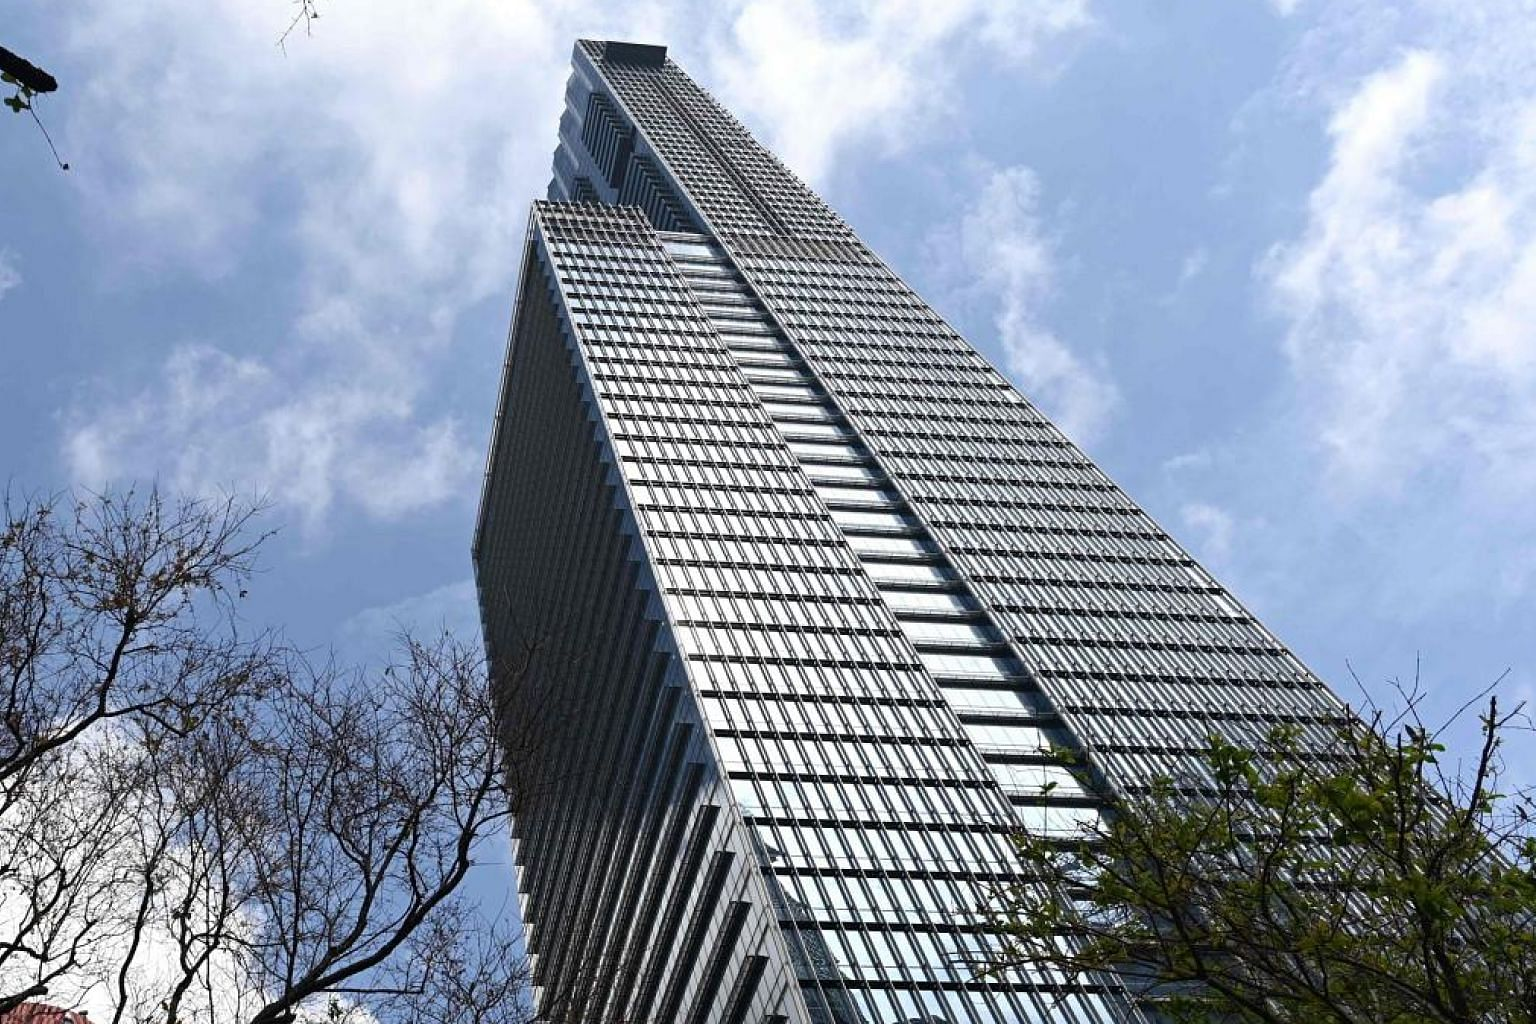 Sir James Dyson's new property has five bedrooms and a private pool on the 62nd floor. PHOTO: AGENCE FRANCE-PRESSE